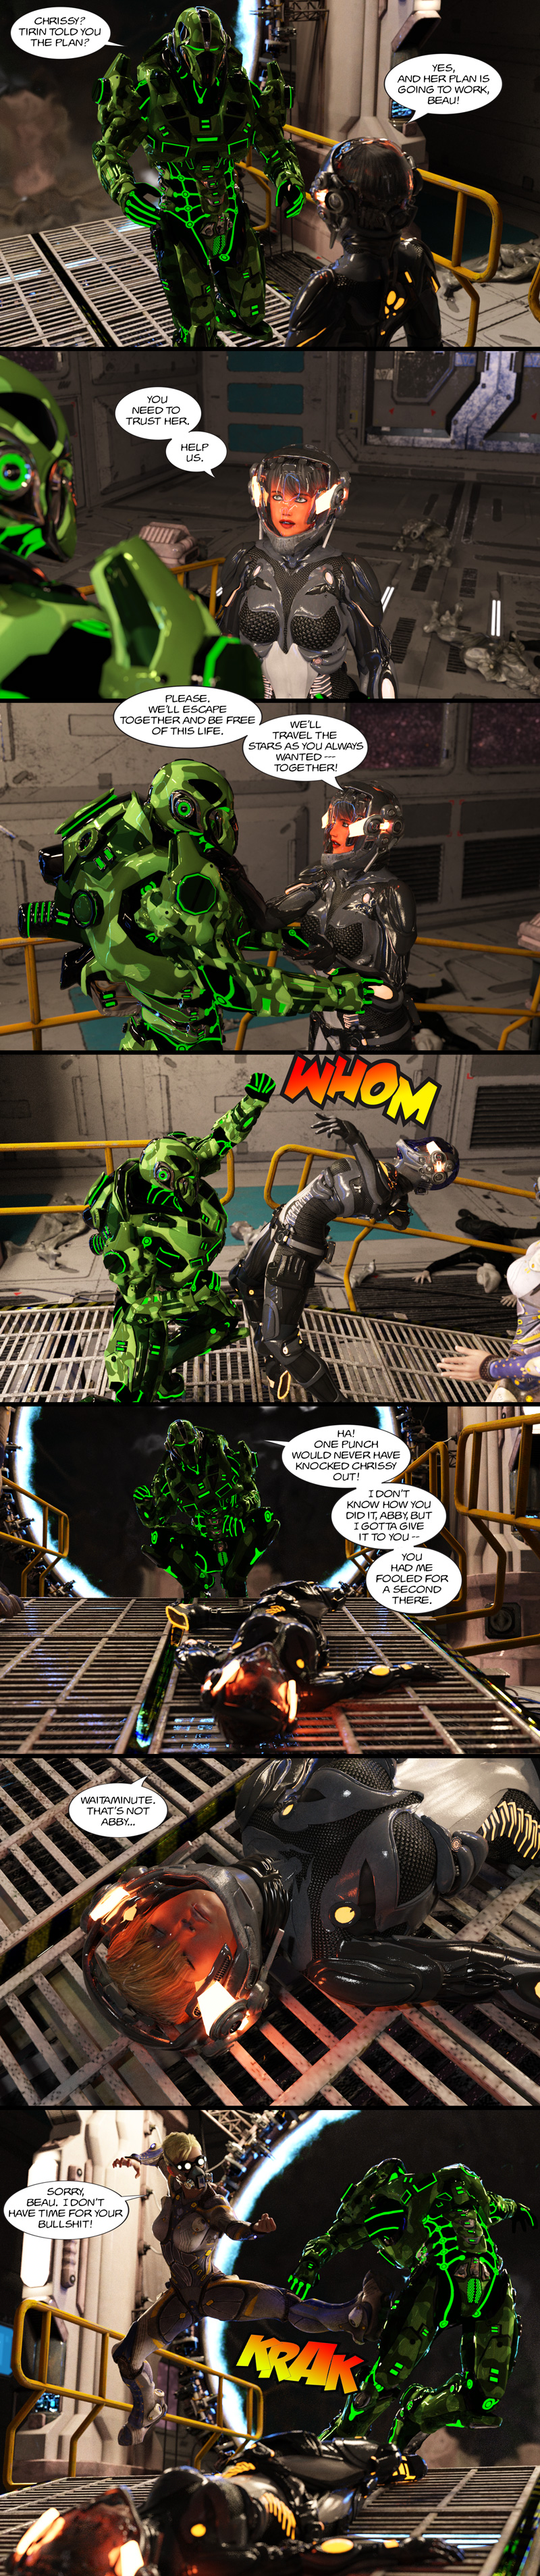 Chapter 14, page 5